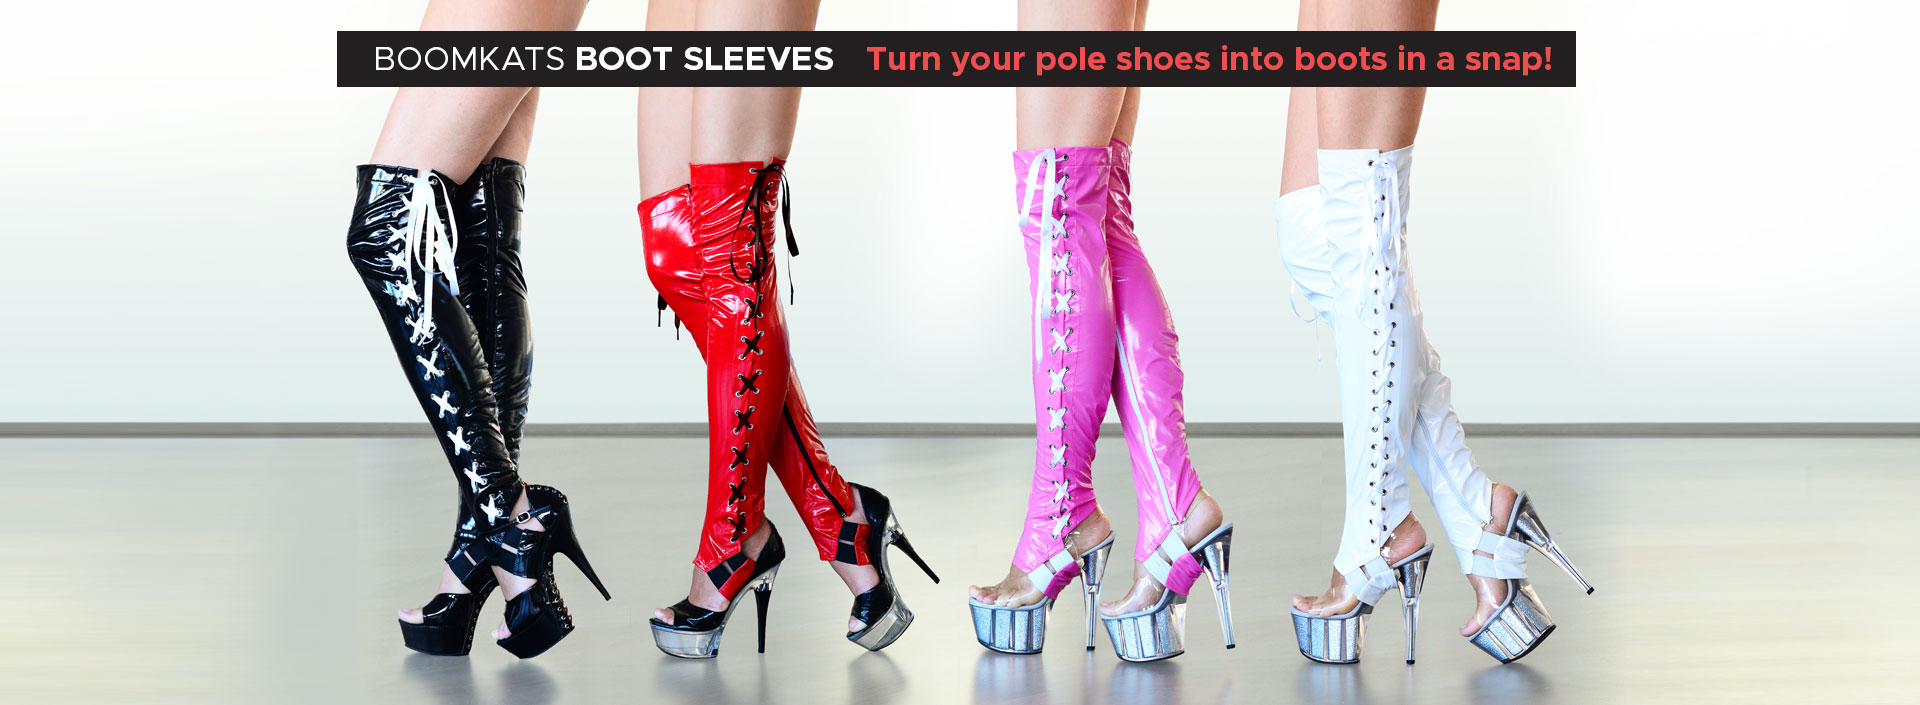 Boomkats_poledance_boot_sleeves_